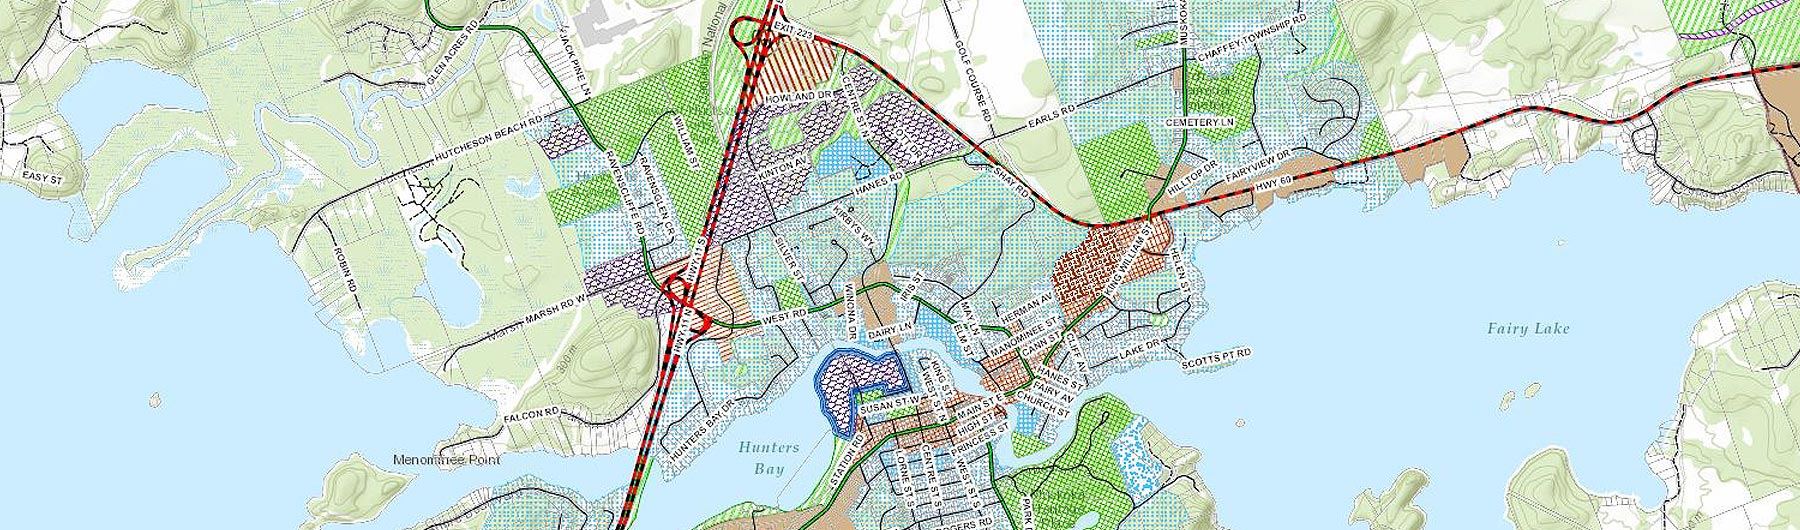 image of a huntsville zoning map